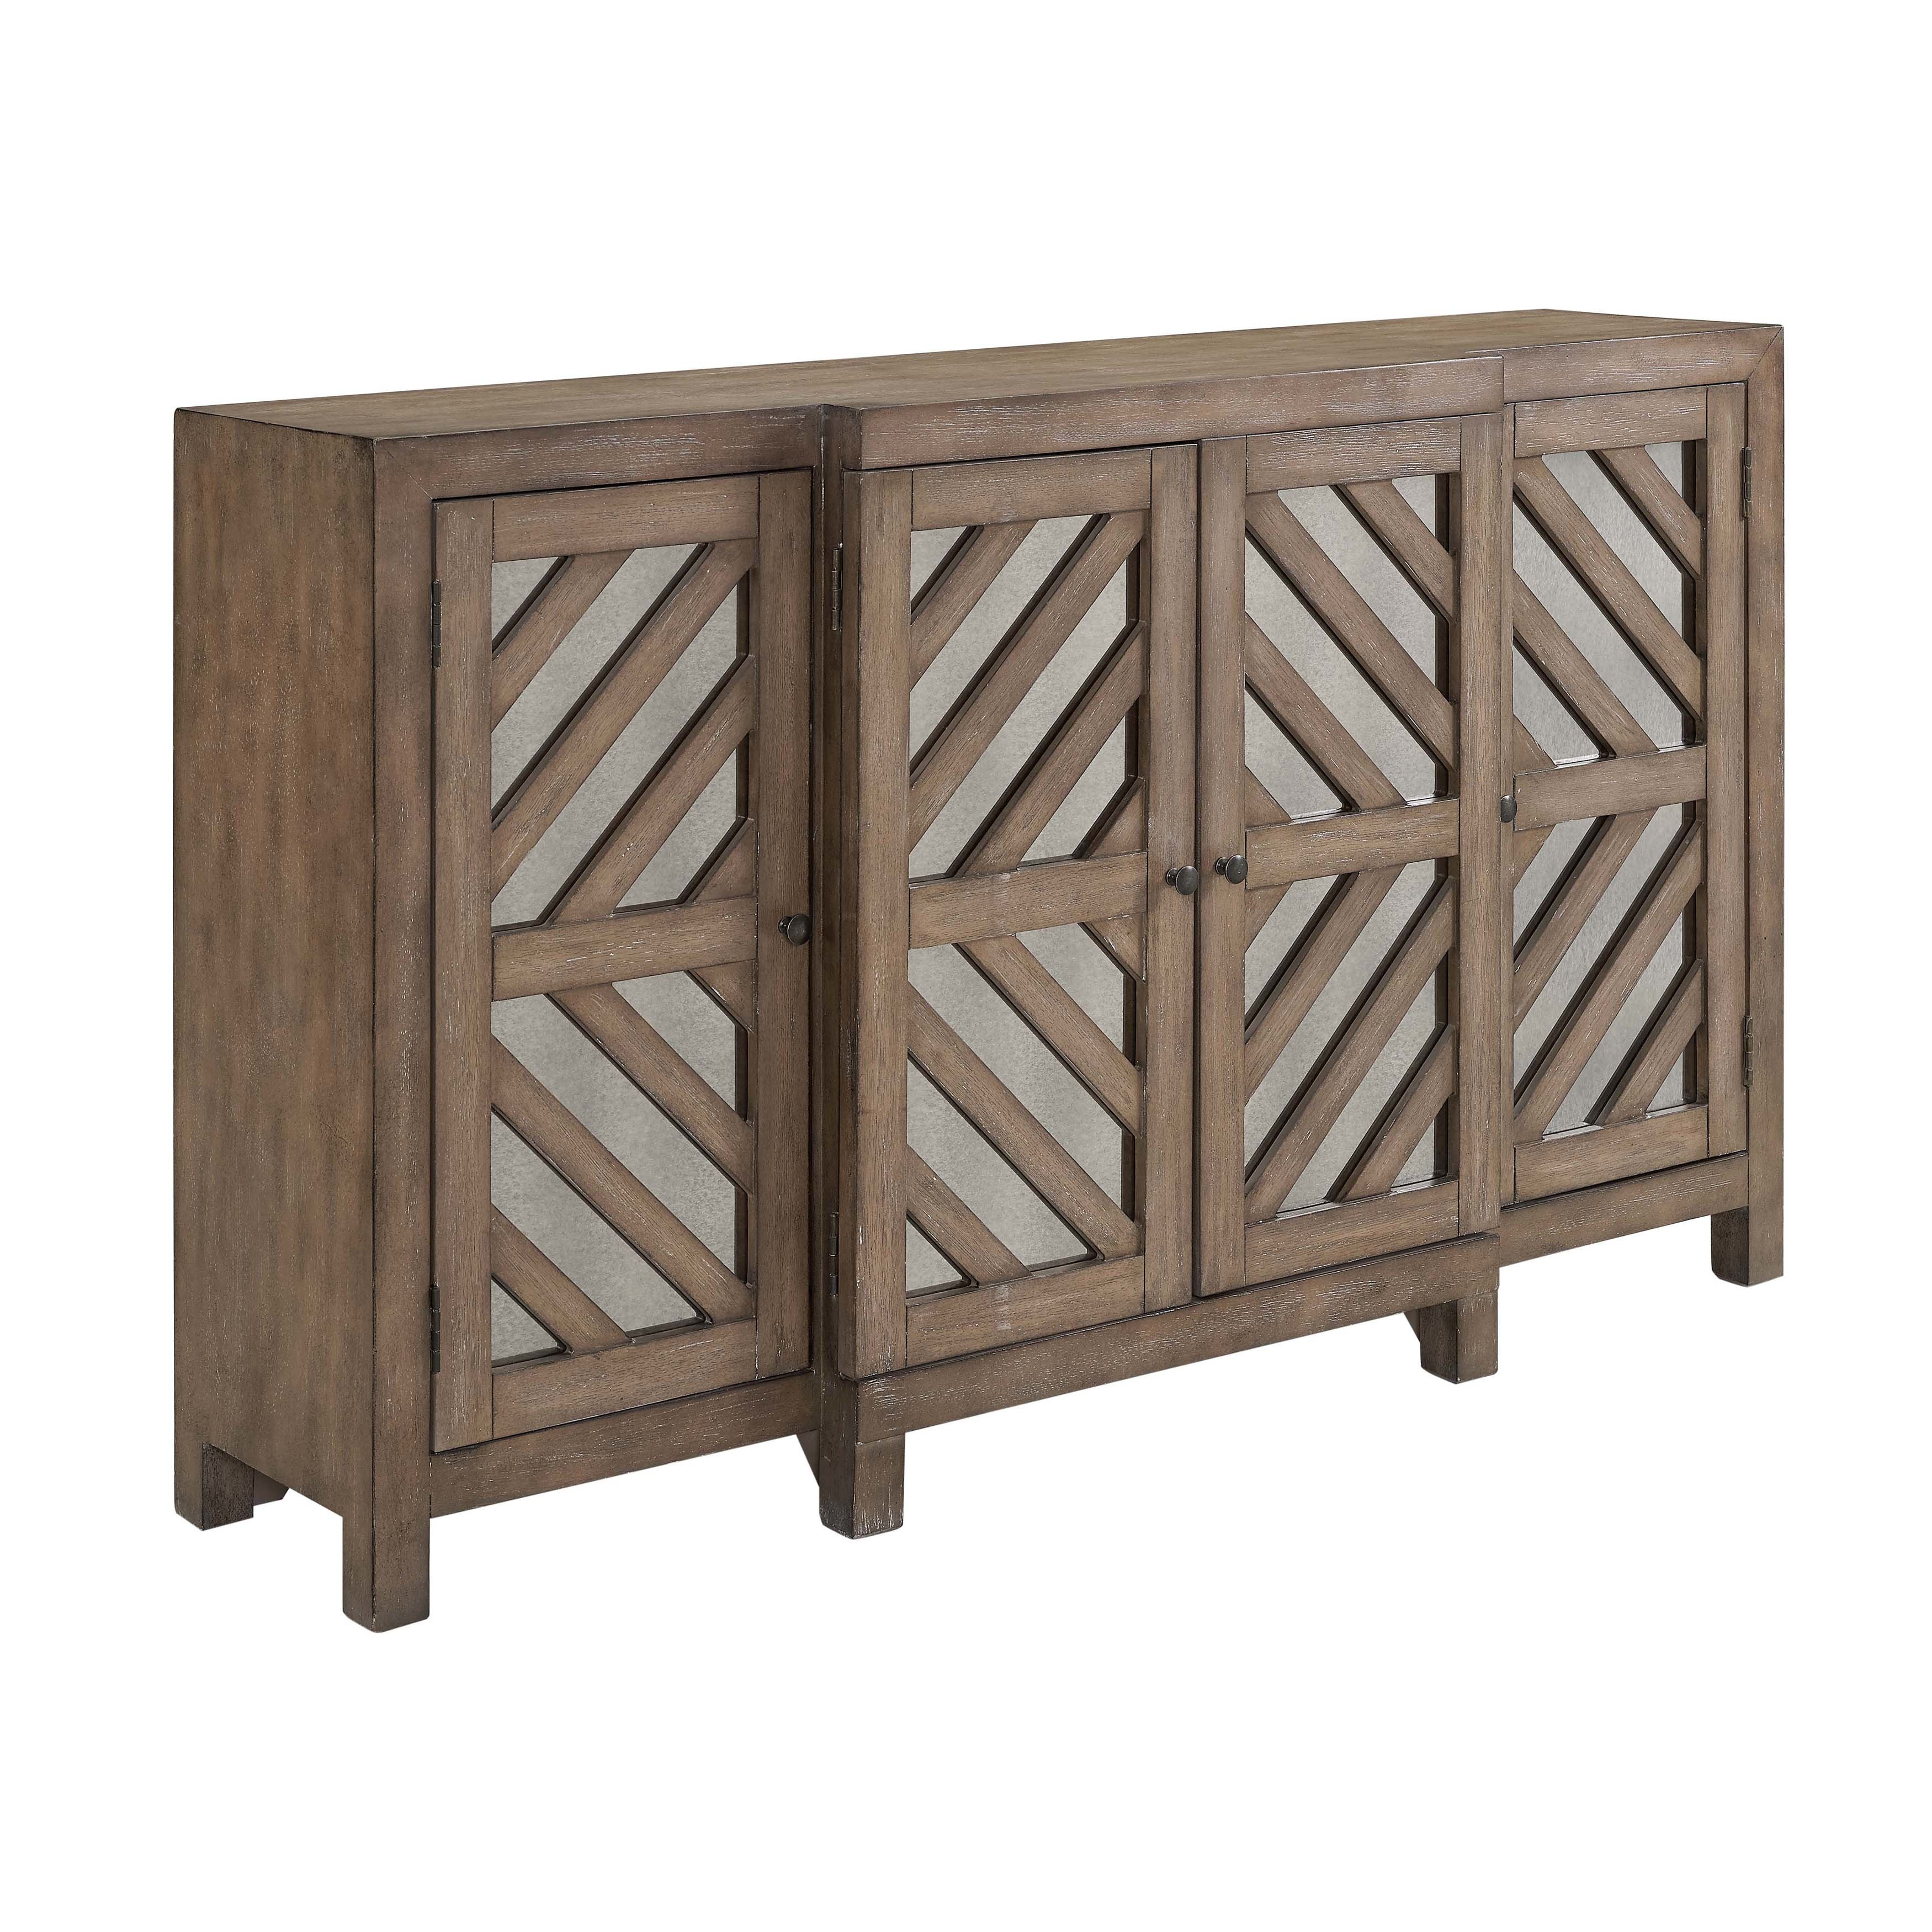 Farmhouse & Rustic Sideboards & Buffets | Birch Lane throughout Amityville Wood Sideboards (Image 19 of 30)